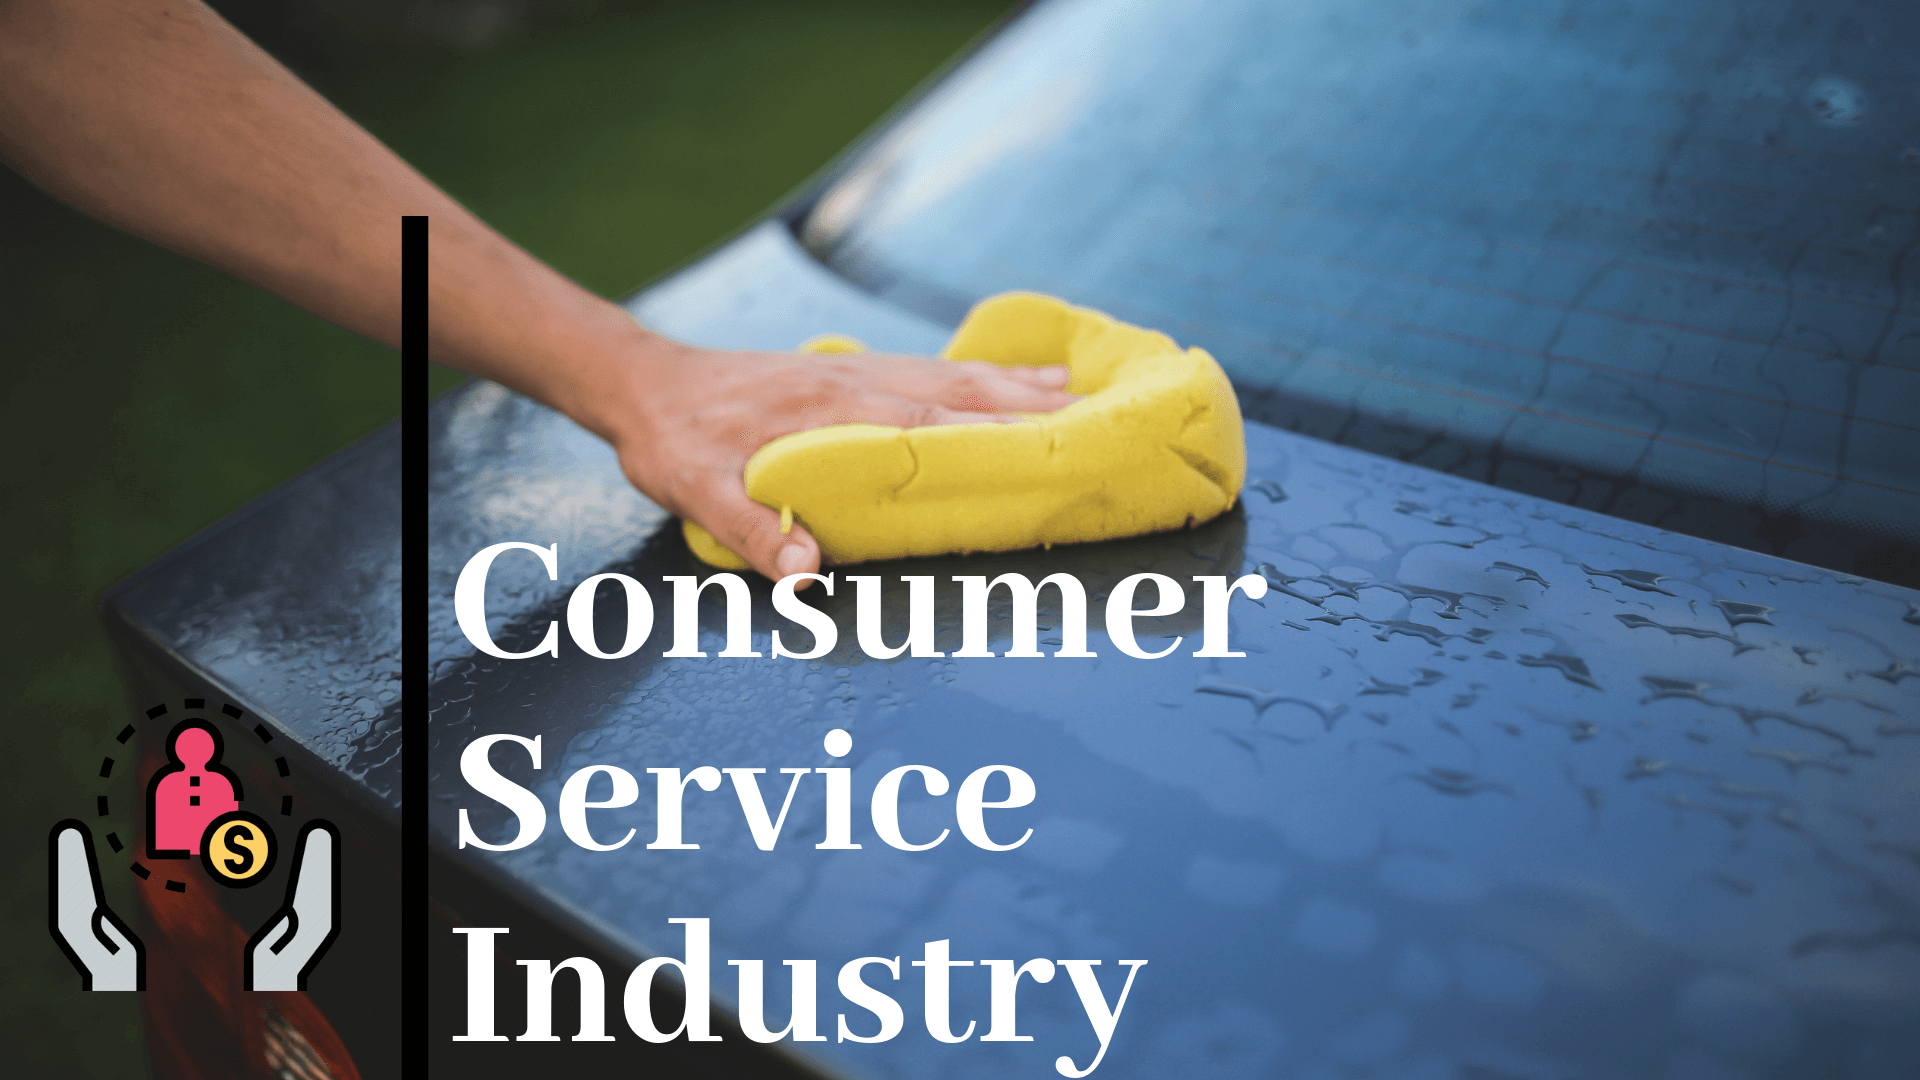 Consumer service TRooTech Business Solutions